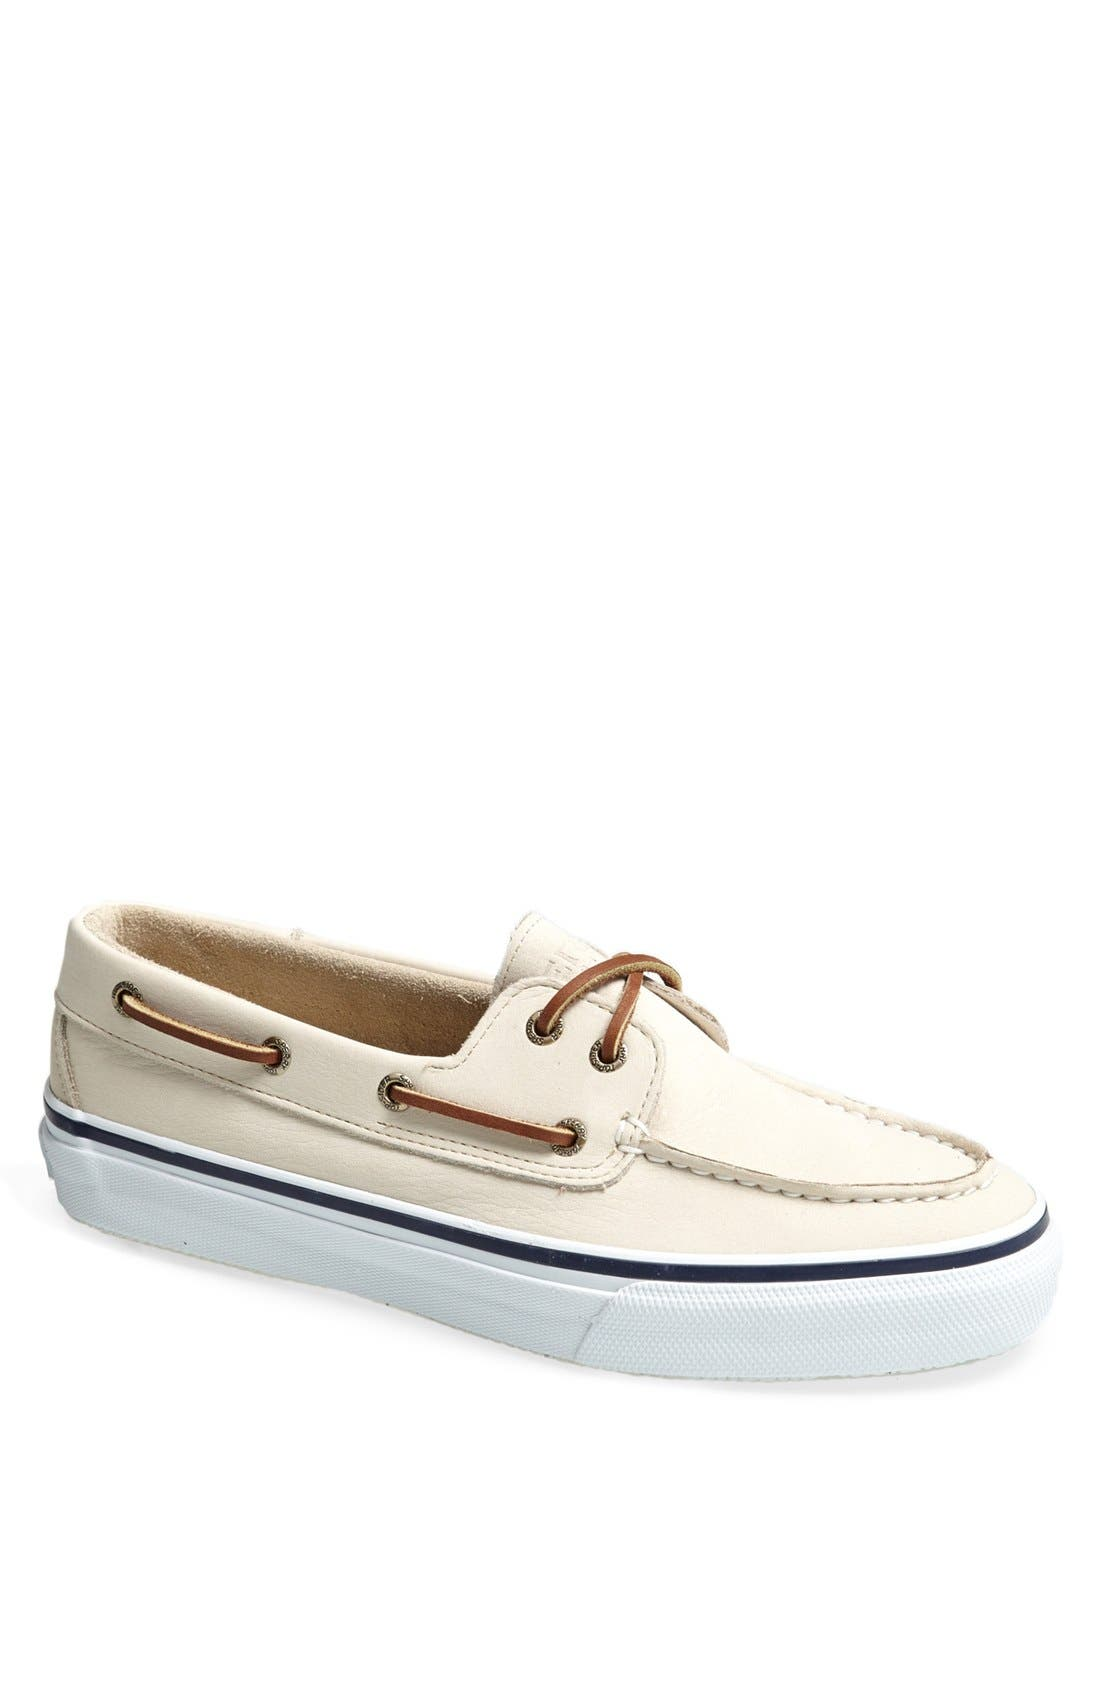 Alternate Image 1 Selected - Sperry Top-Sider® 'Bahama' Washable Boat Shoe